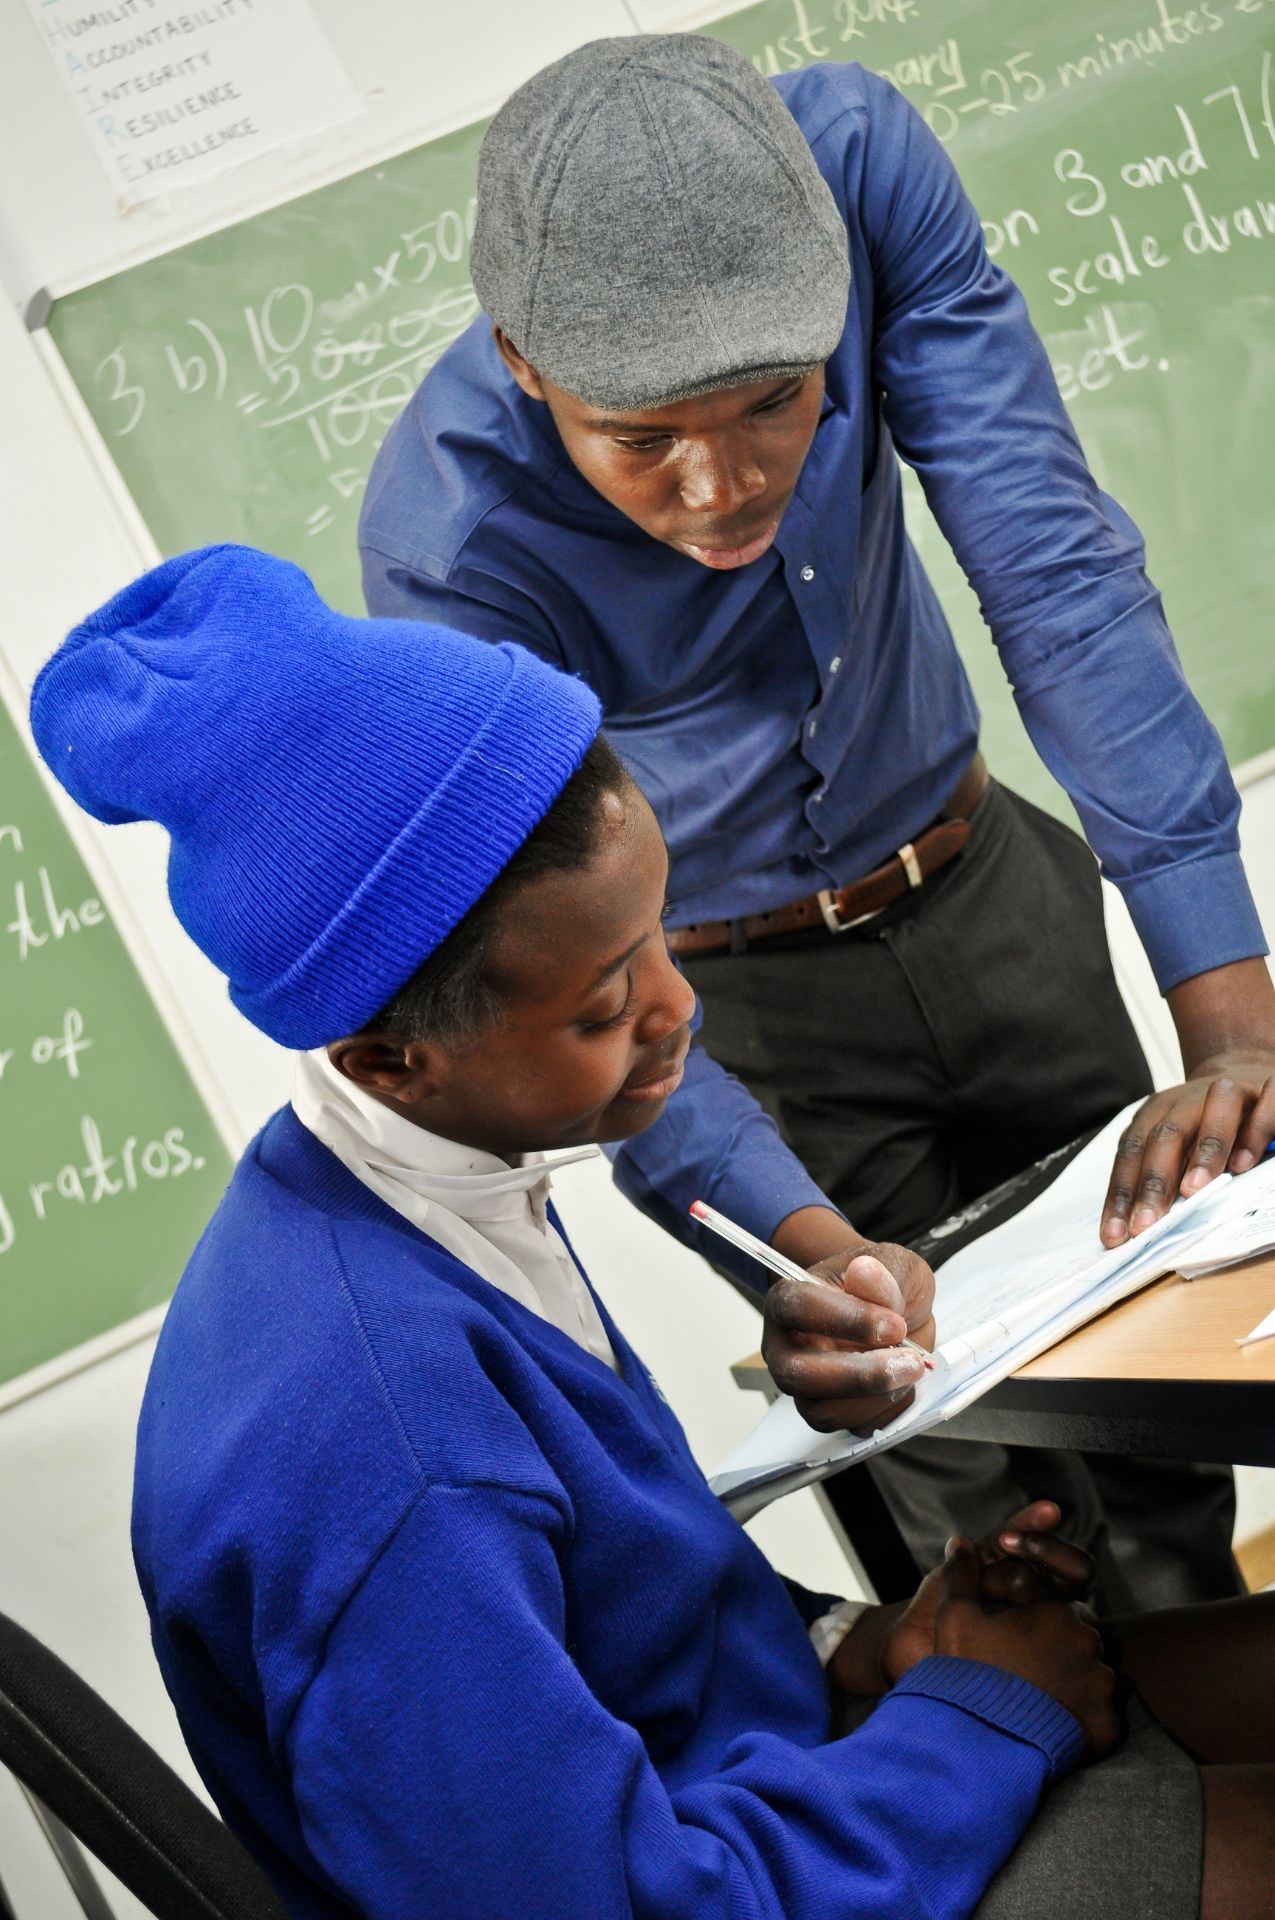 African Scool of Excellence Photos 748